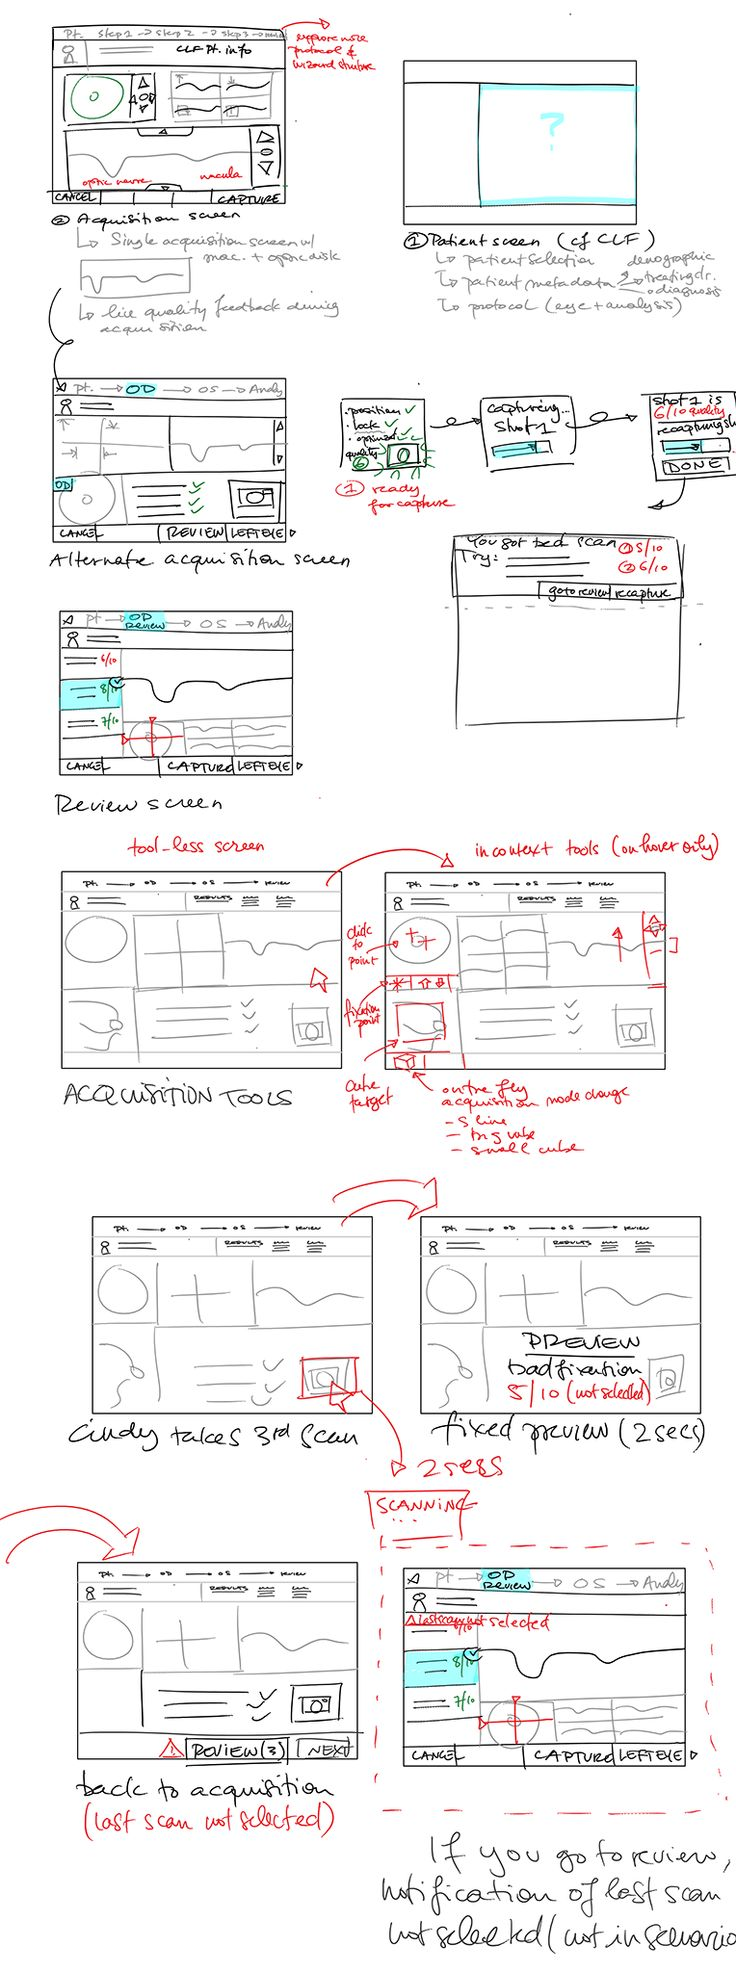 OneNote Documenting, Example 6 / Cooper Consulting